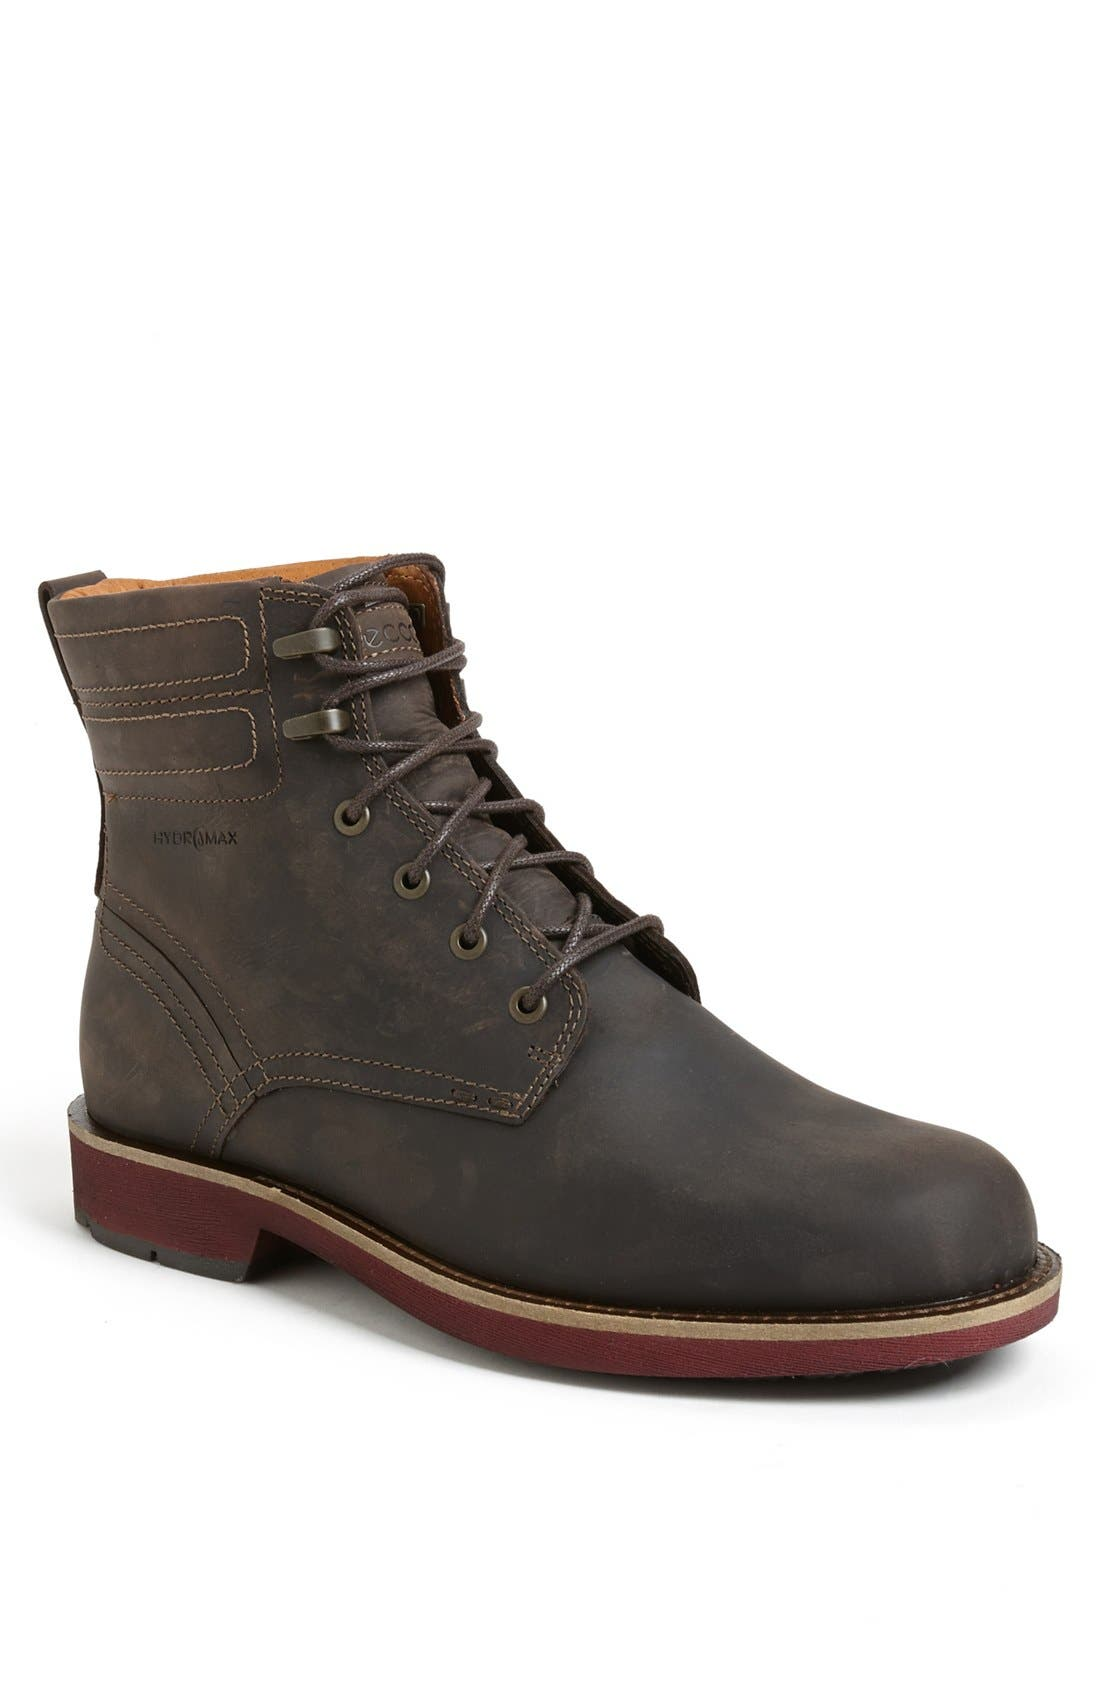 Alternate Image 1 Selected - ECCO 'Bendix' Plain Toe Boot (Men)